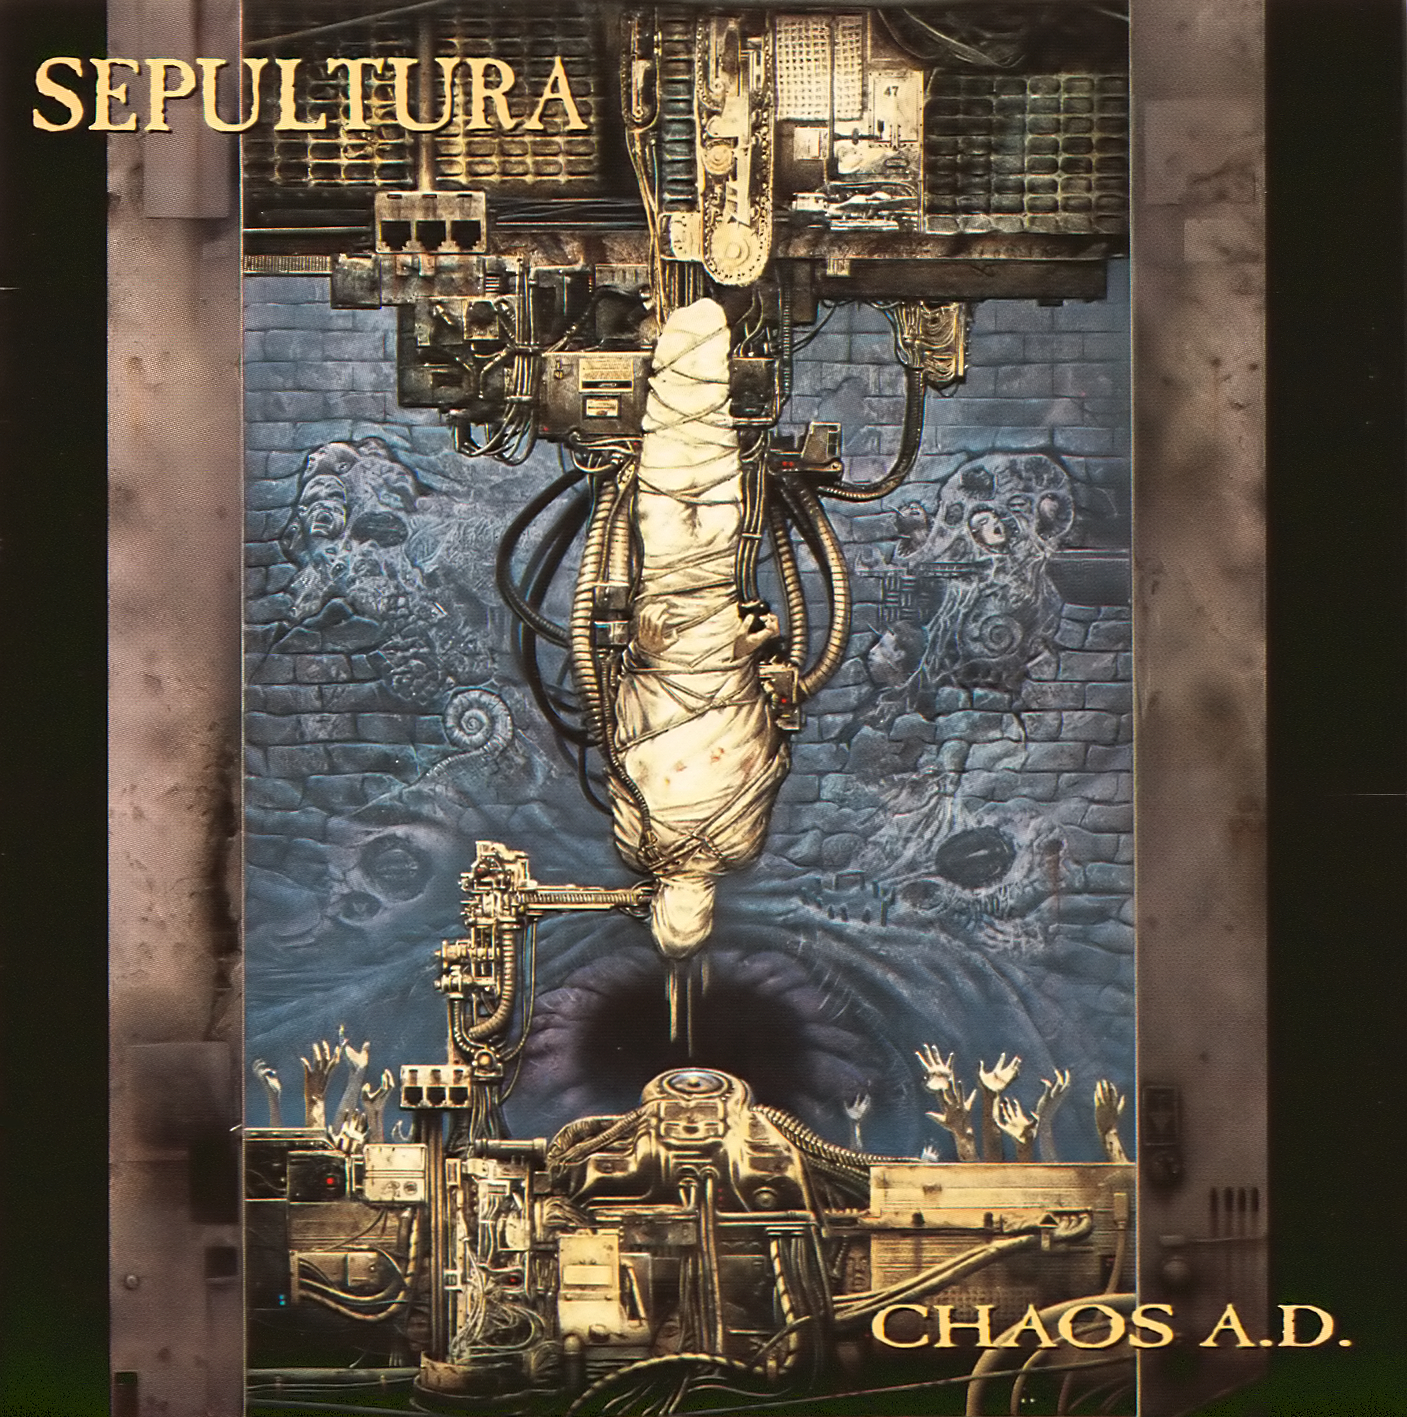 Album covers sepultura Music HD Wallpaper